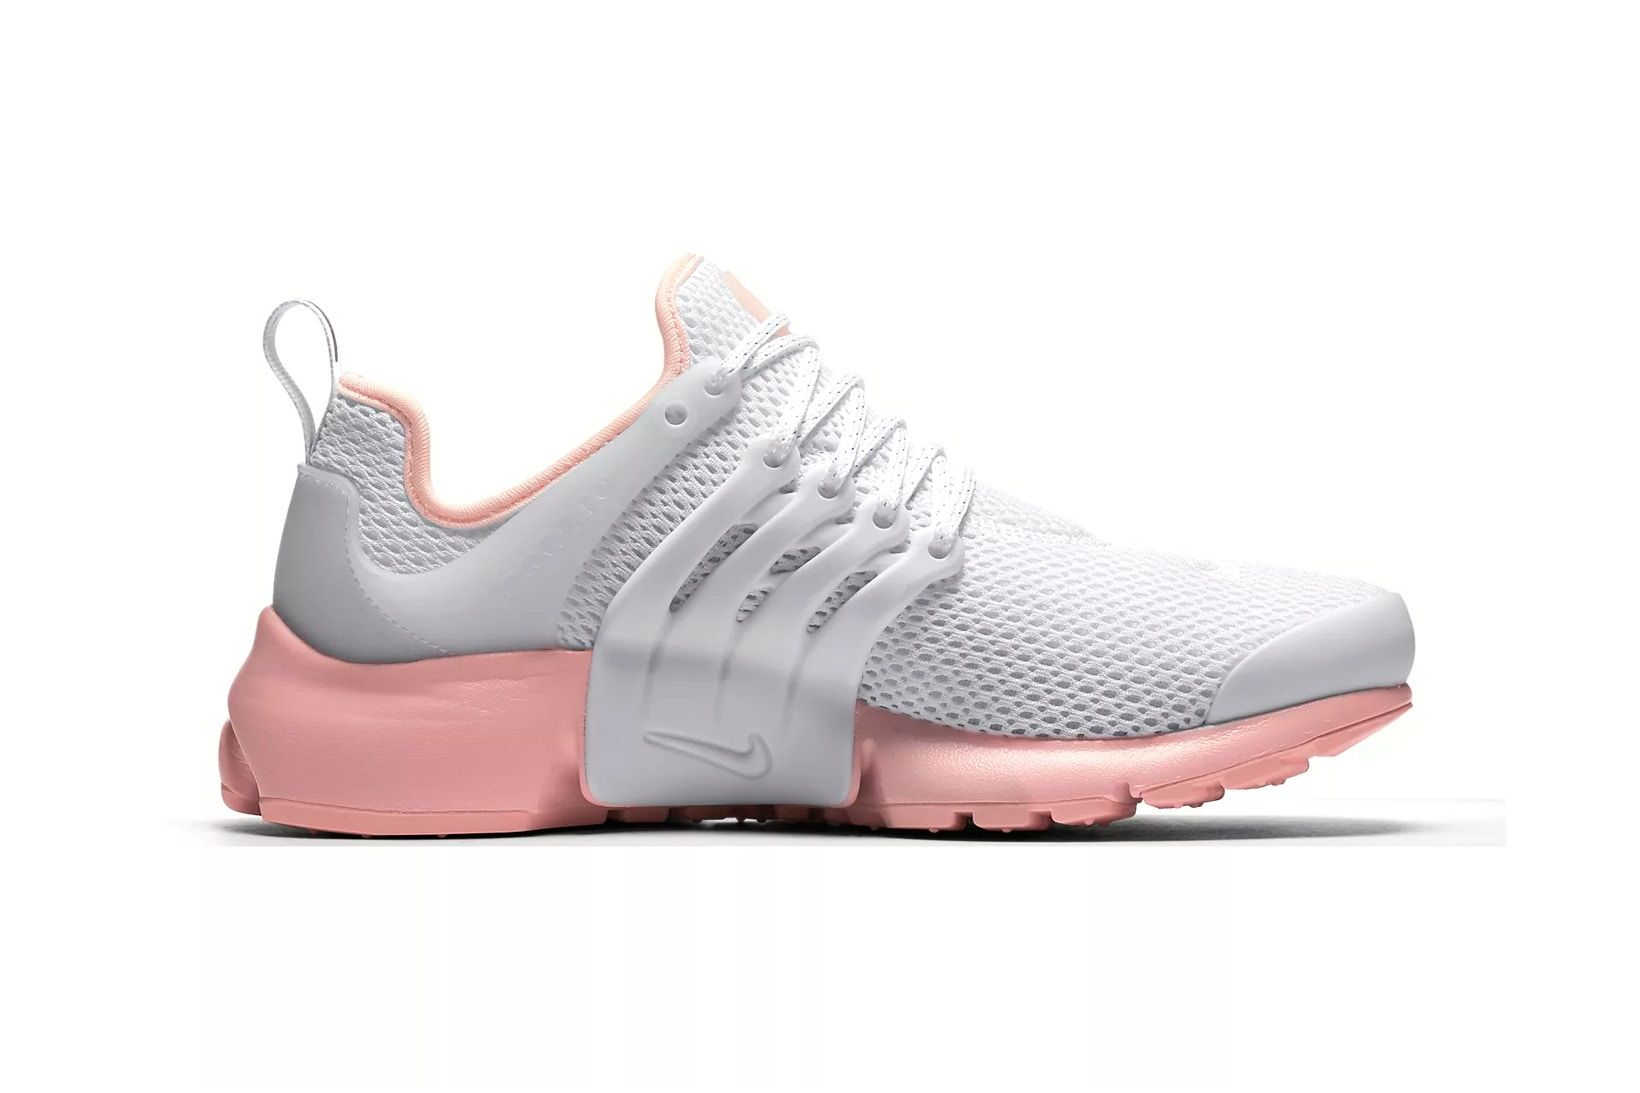 finest selection 4bf9a eccb6 This Nike Air Presto Is Colorblocked in Minimal Summer Moods ...